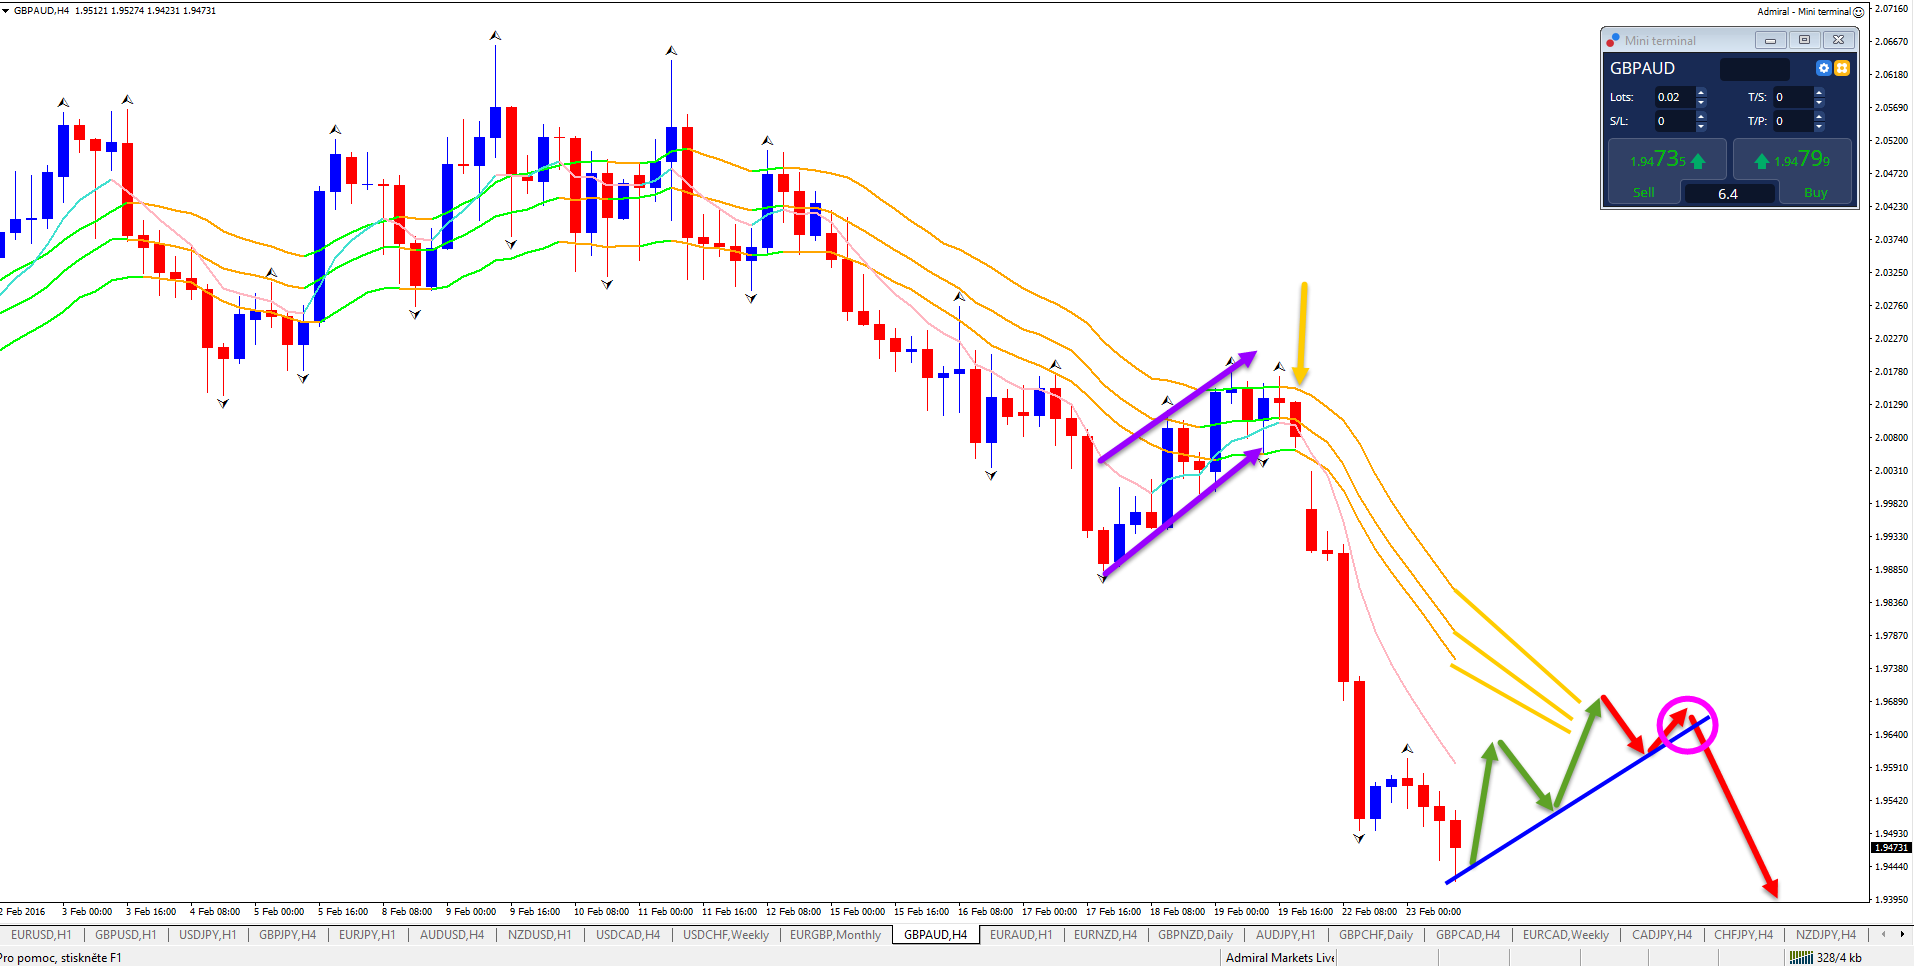 gbpaud analyse 4uur trade setup